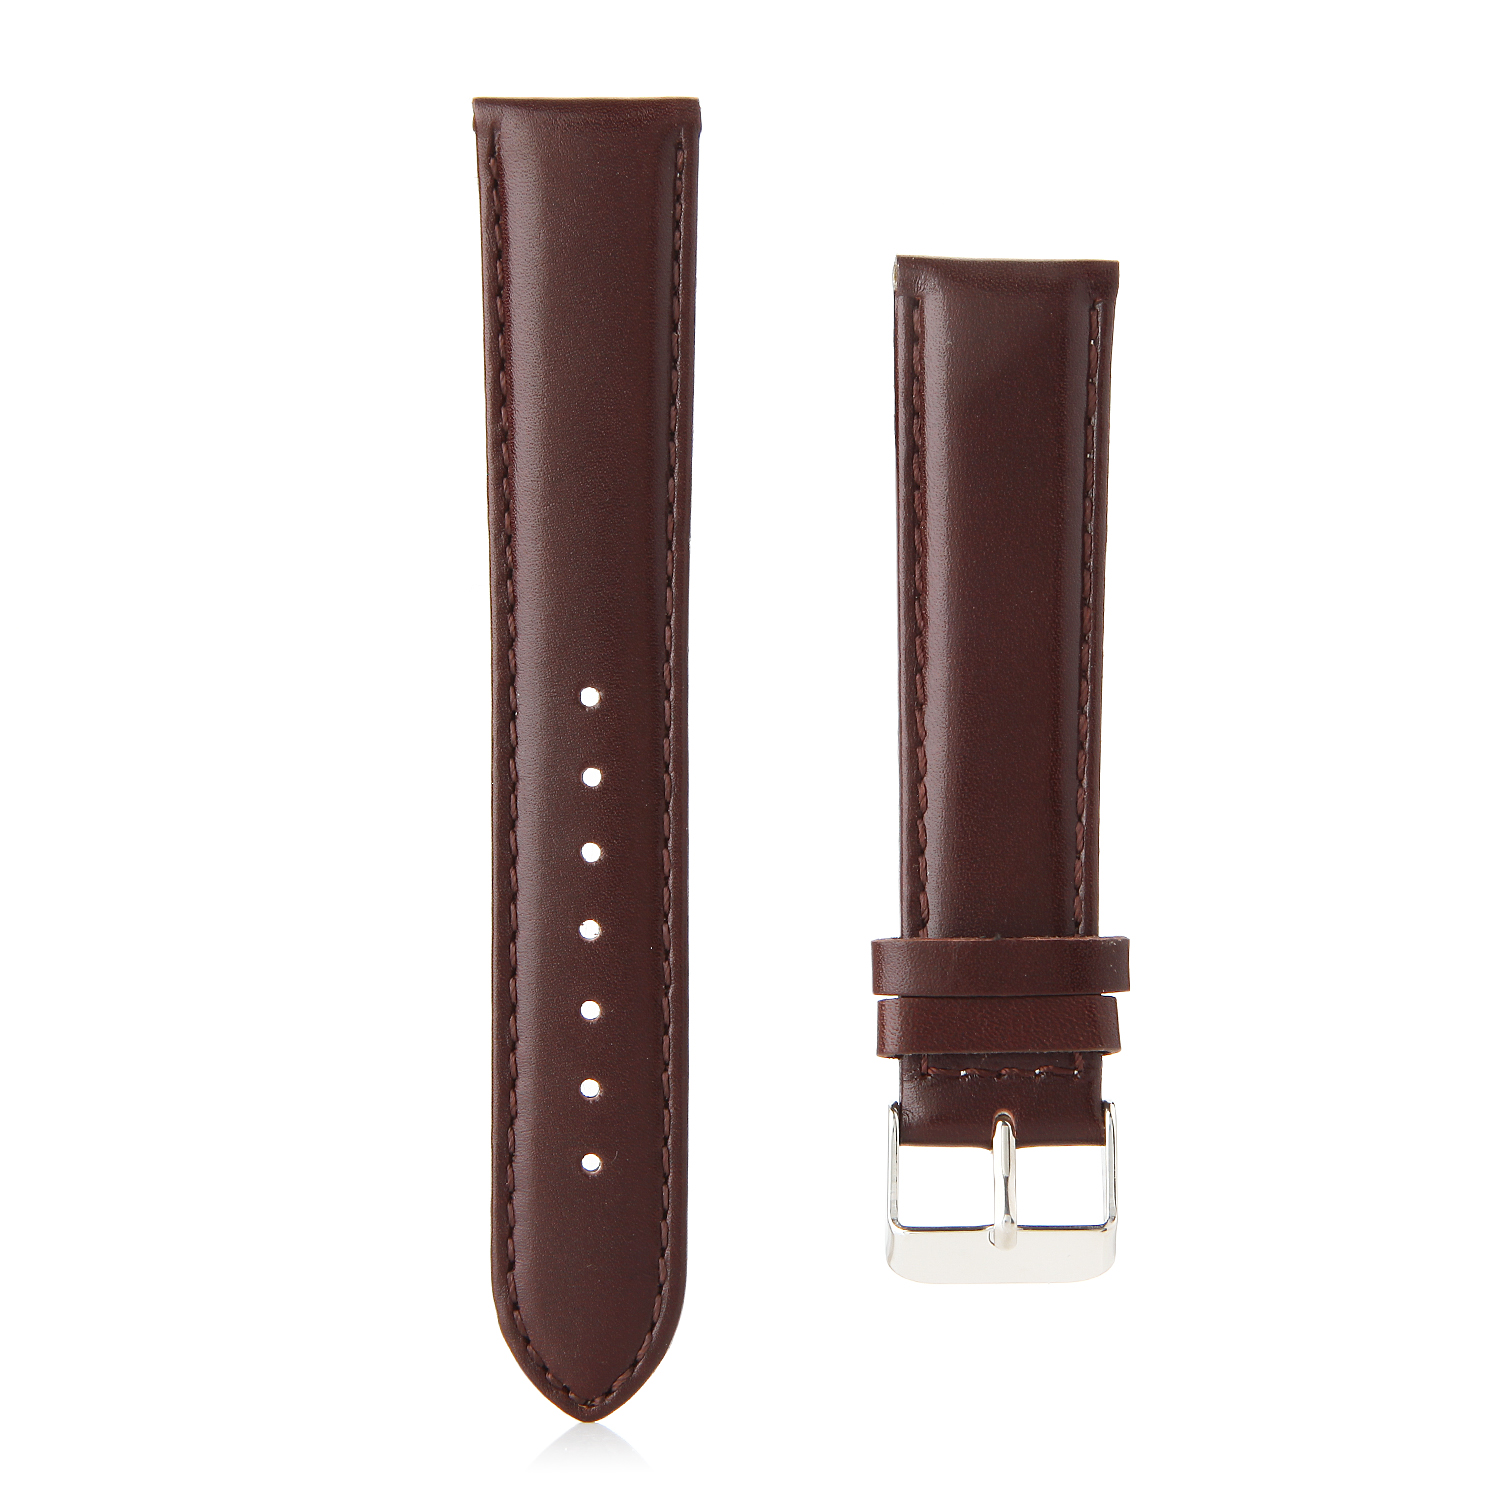 Top Layer Leather Buckle Watch Bands Straps For Apple Watch 38mm&42mm Dark Brown